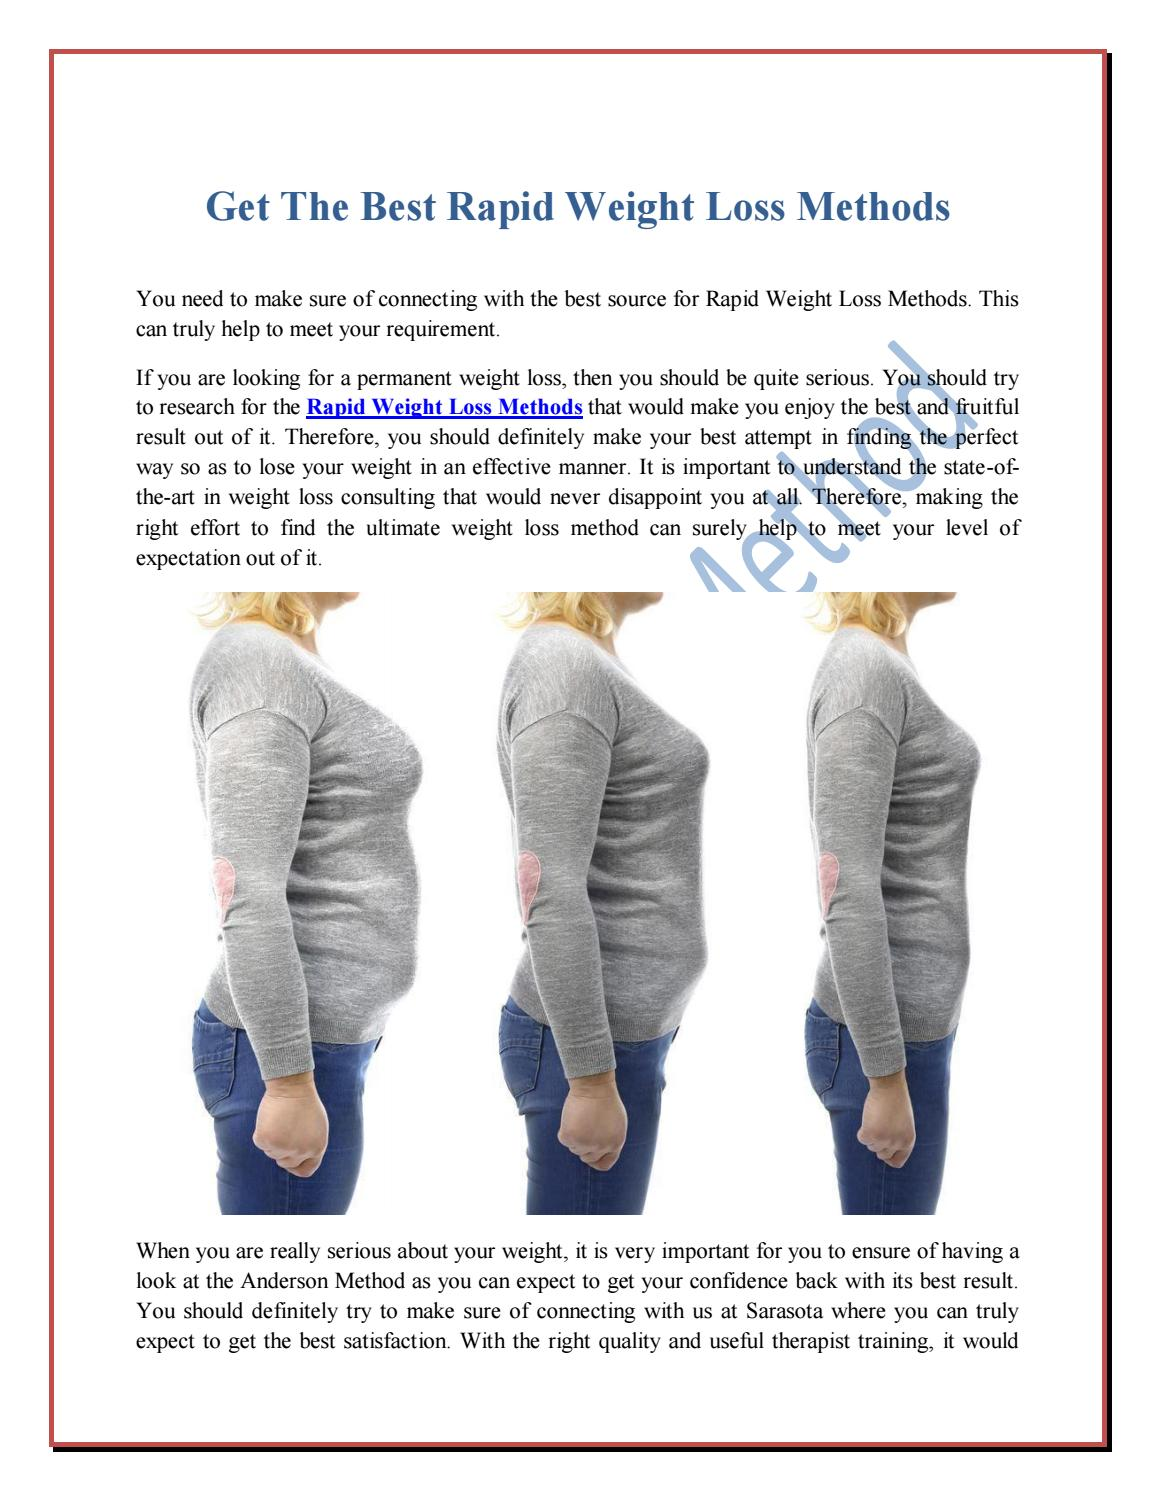 Get The Best Rapid Weight Loss Methods by theandersonmethod - issuu